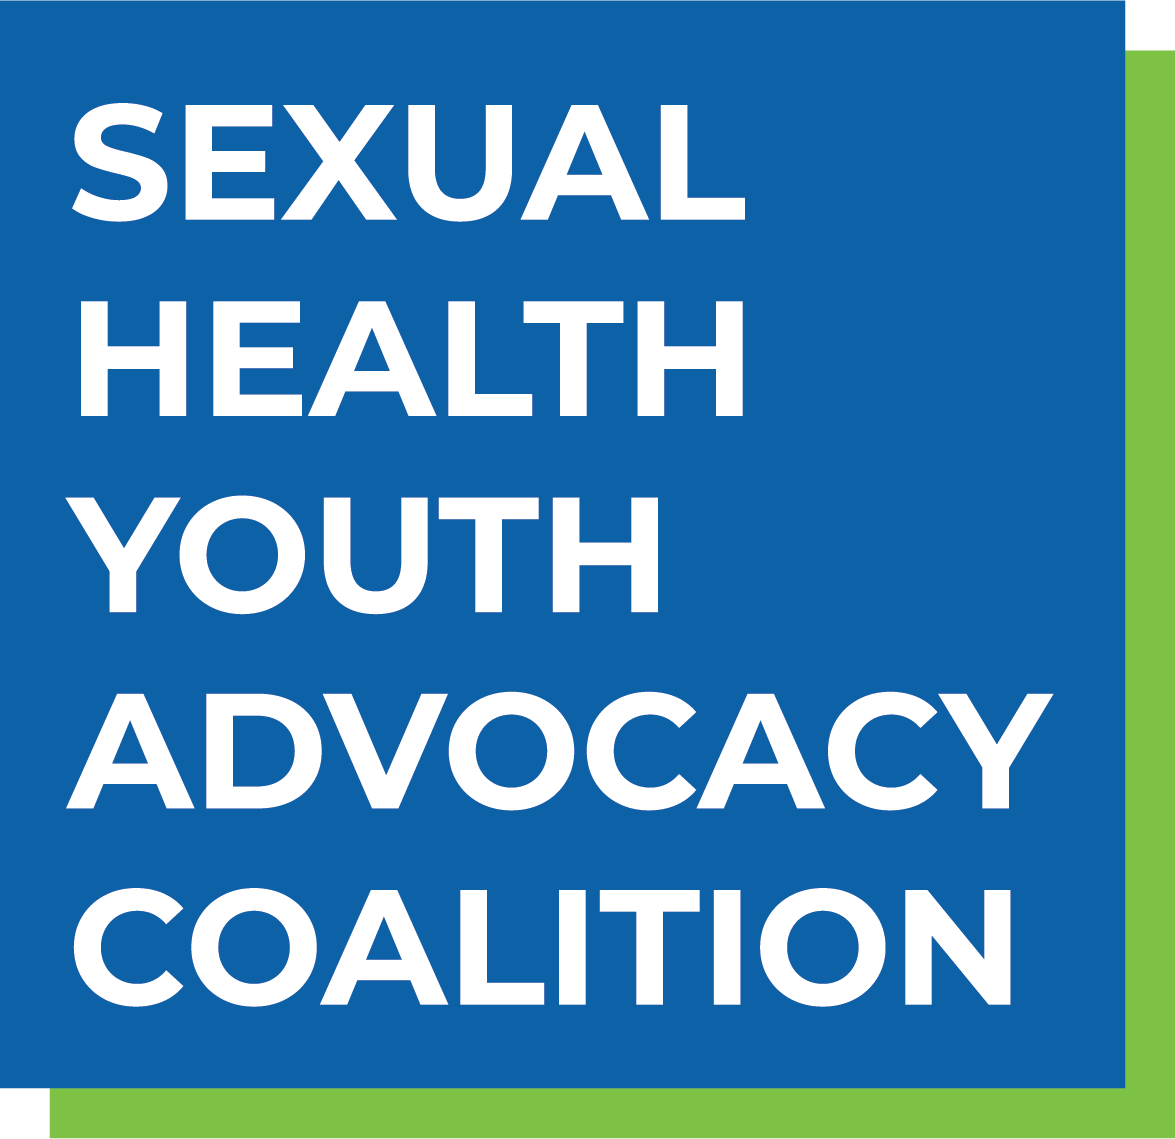 Sexual Health Youth Advocacy Coalition